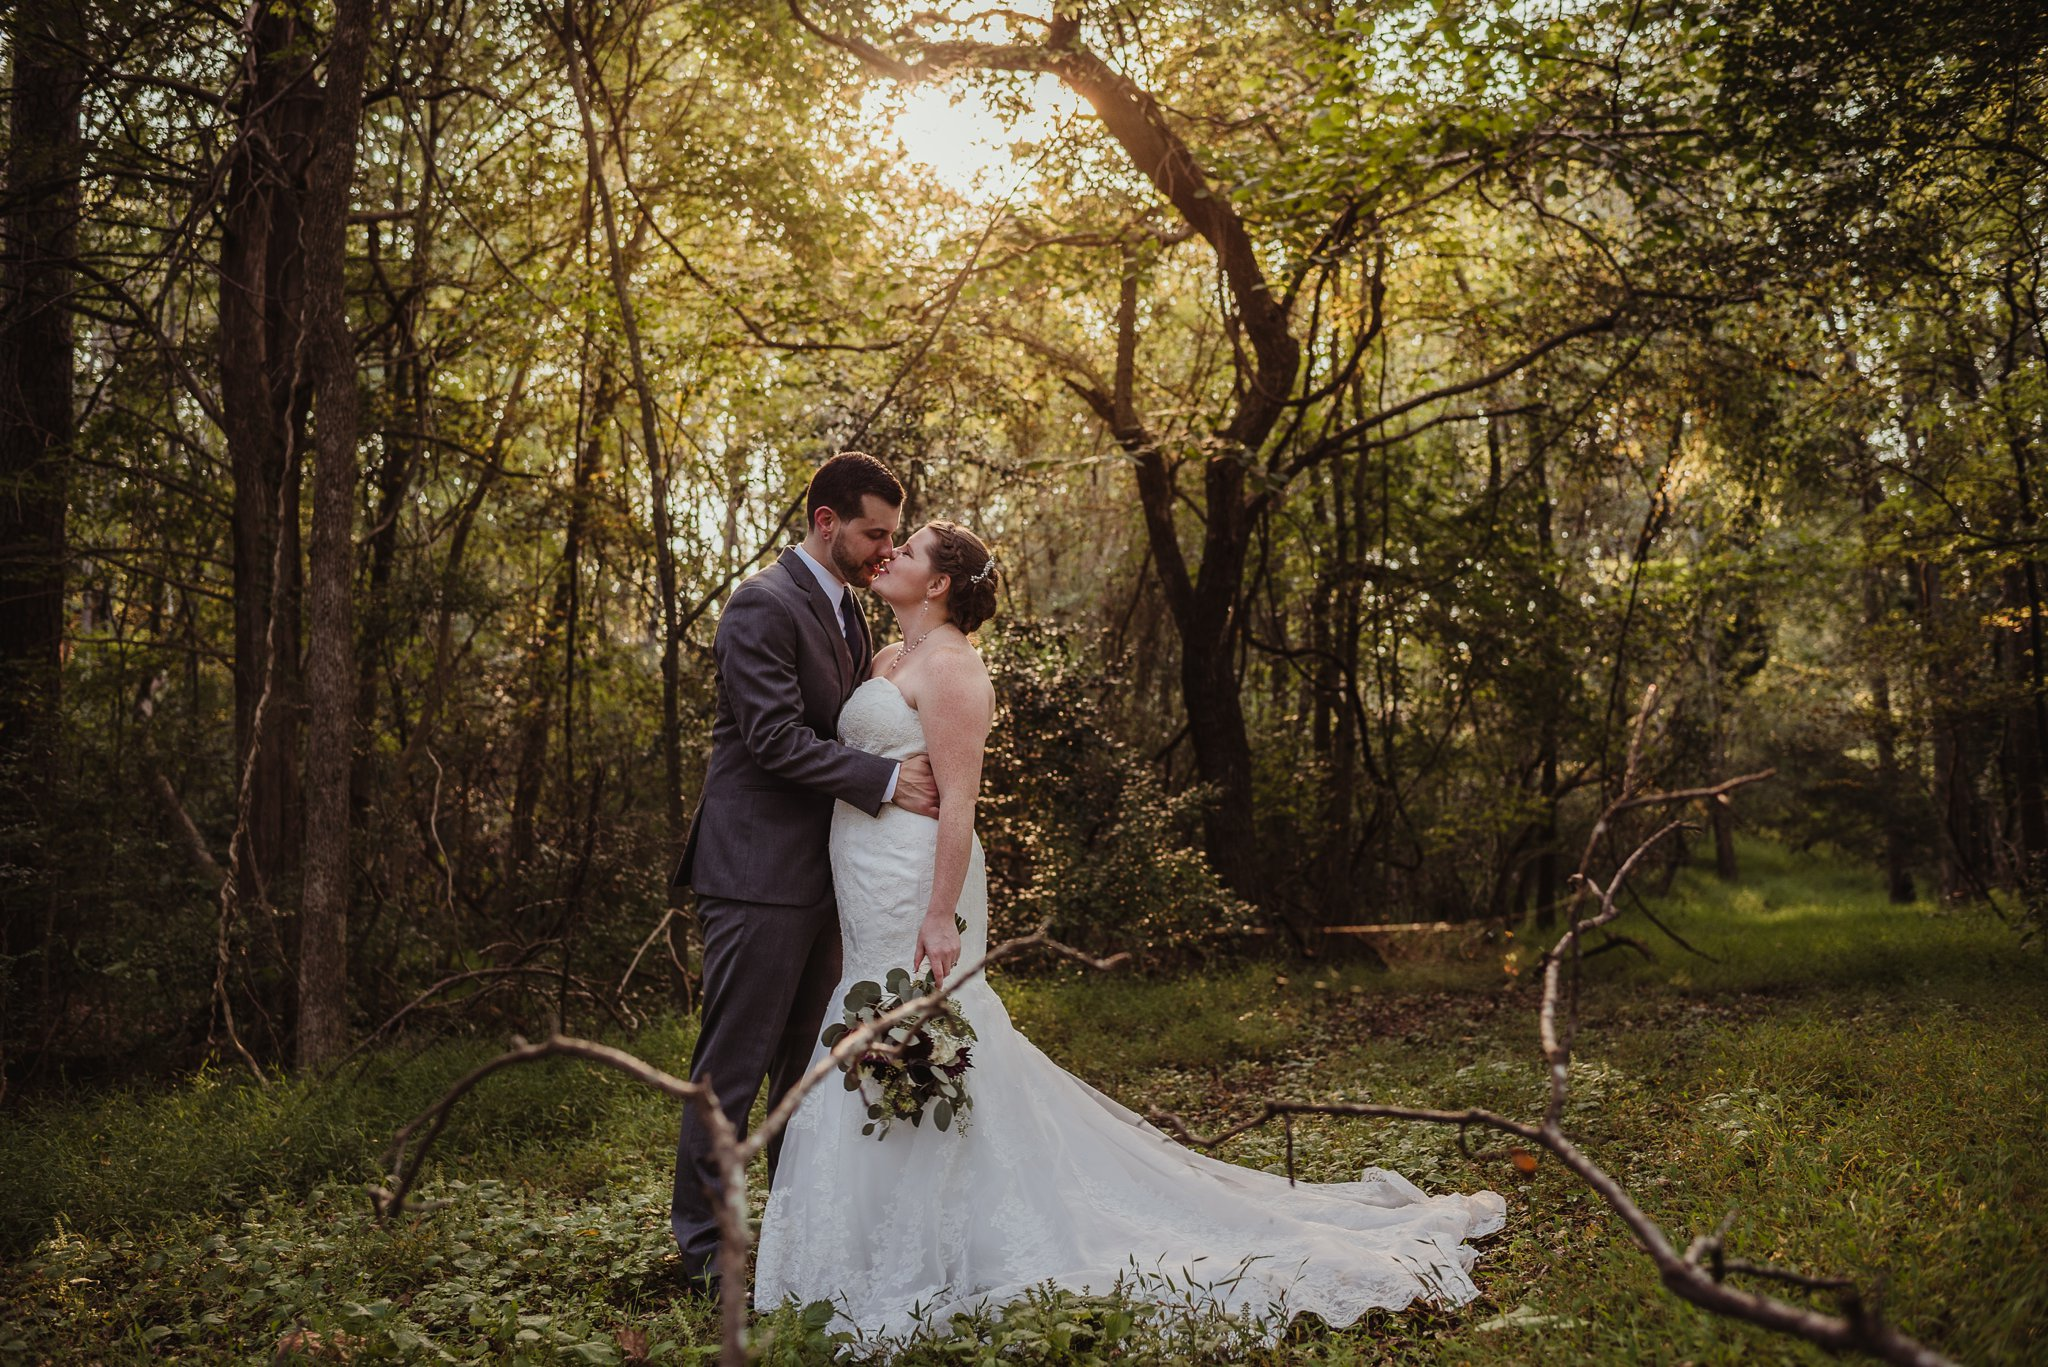 The bride and groom pose for outdoor portraits after their wedding ceremony in Raleigh, North Carolina, pictures by Rose Trail Images.